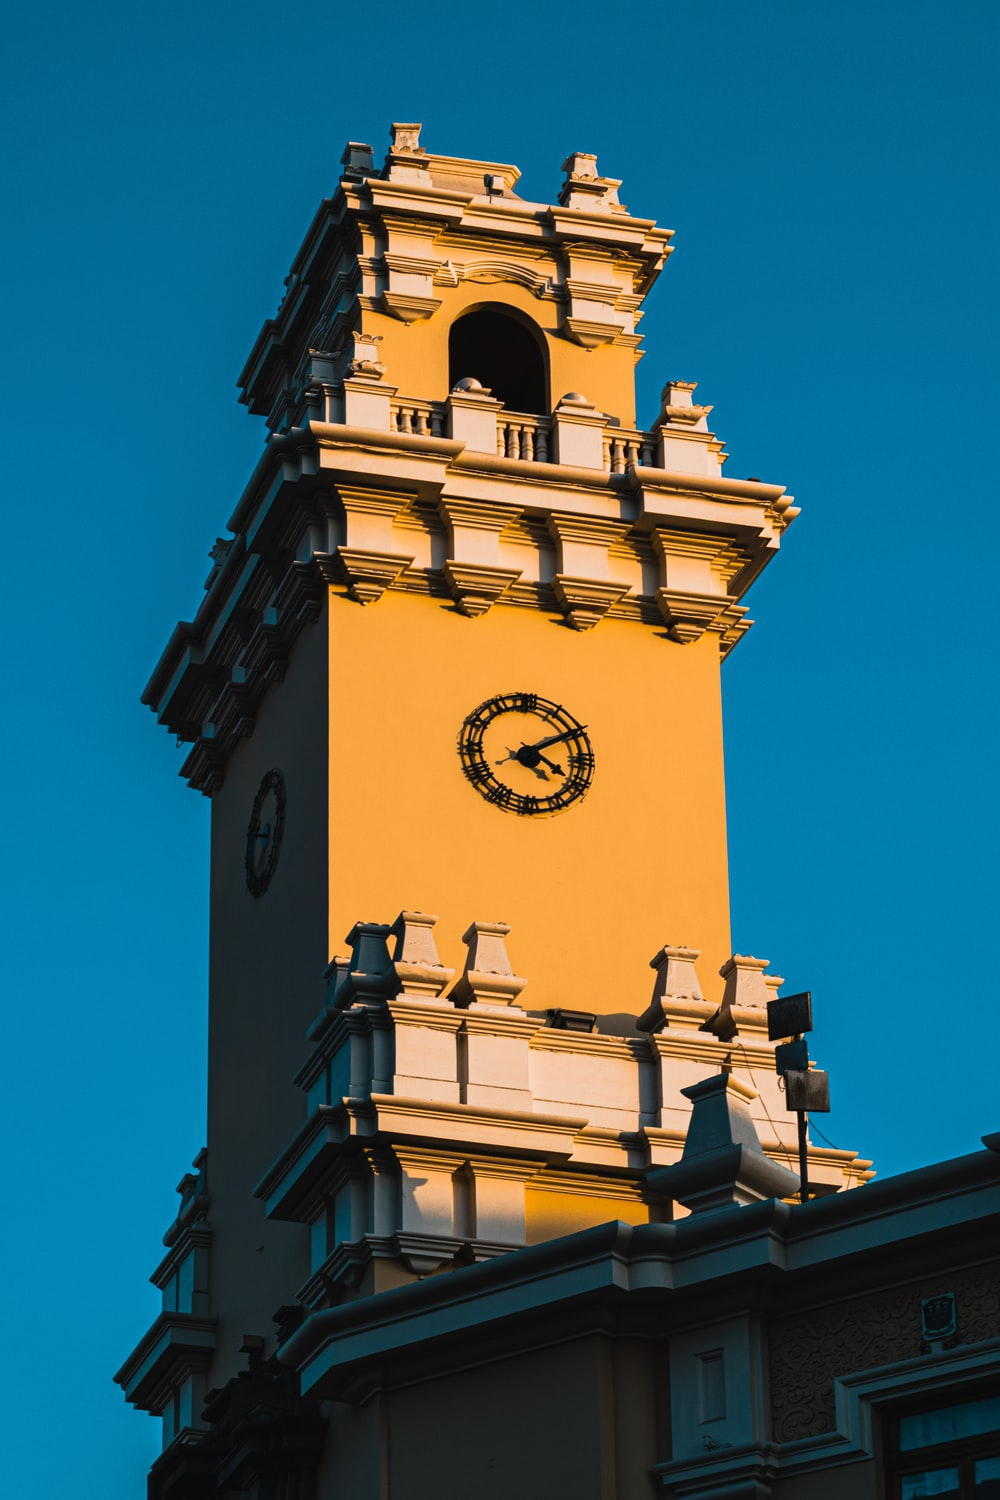 brown and white clock tower